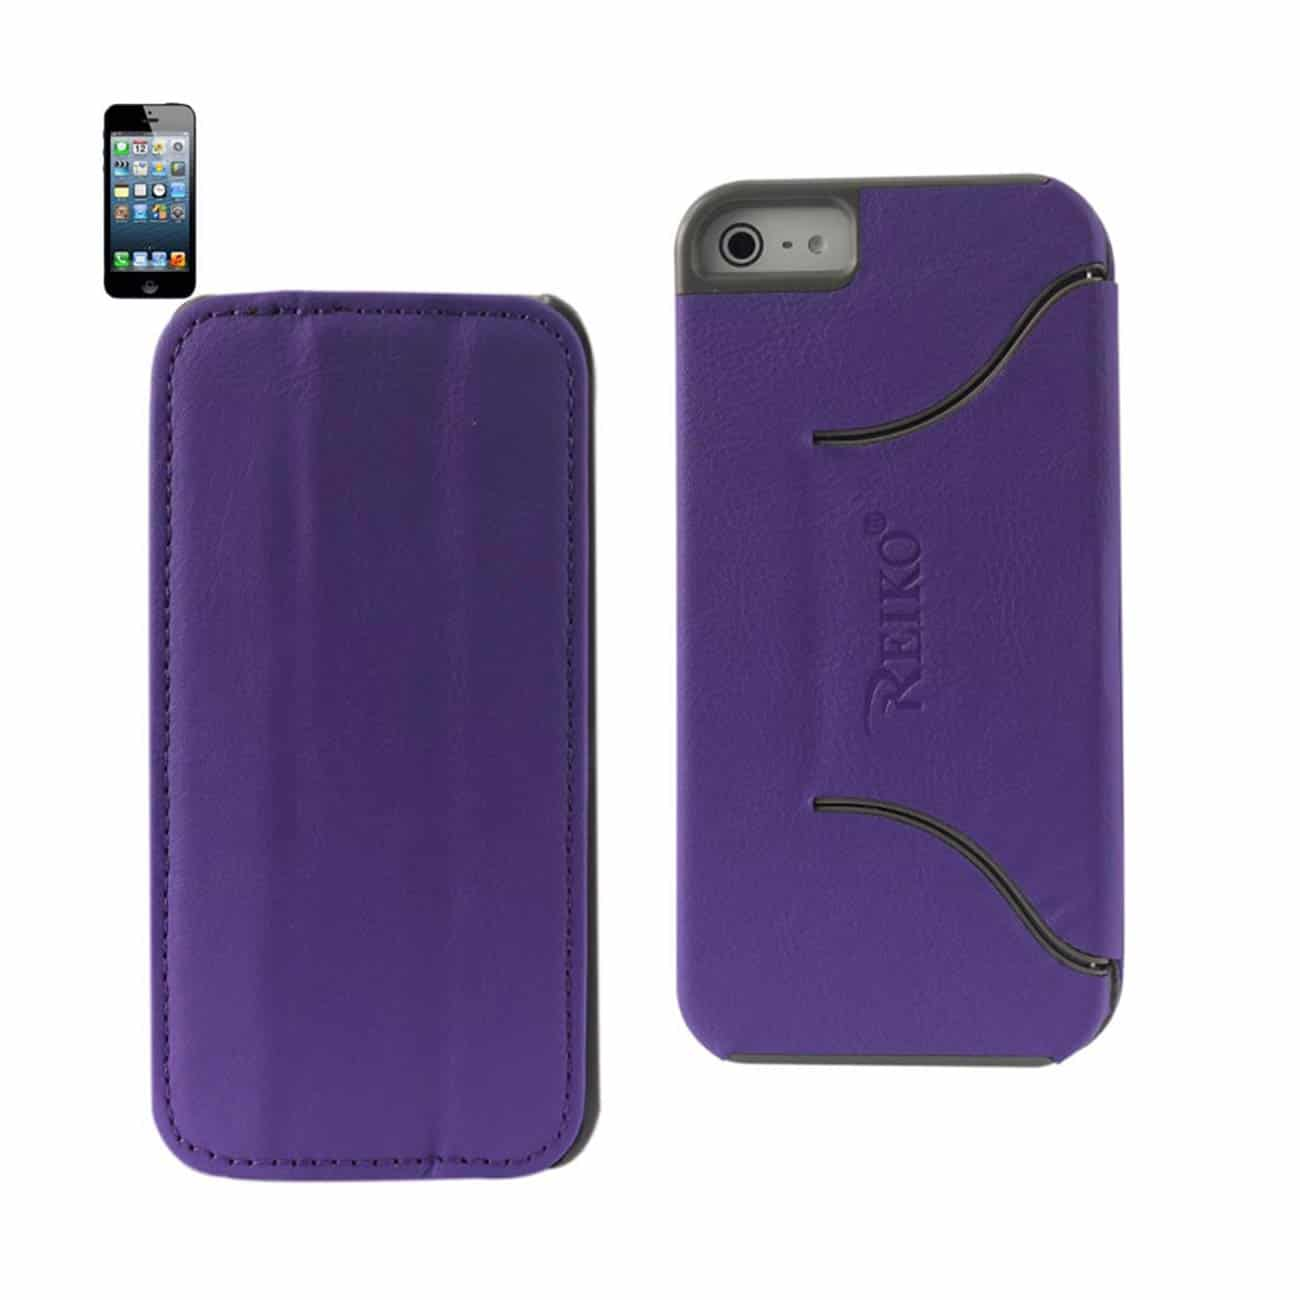 IPHONE SE/ 5S/ 5 FLIP FOLIO CASE WITH STAND IN PURPLE